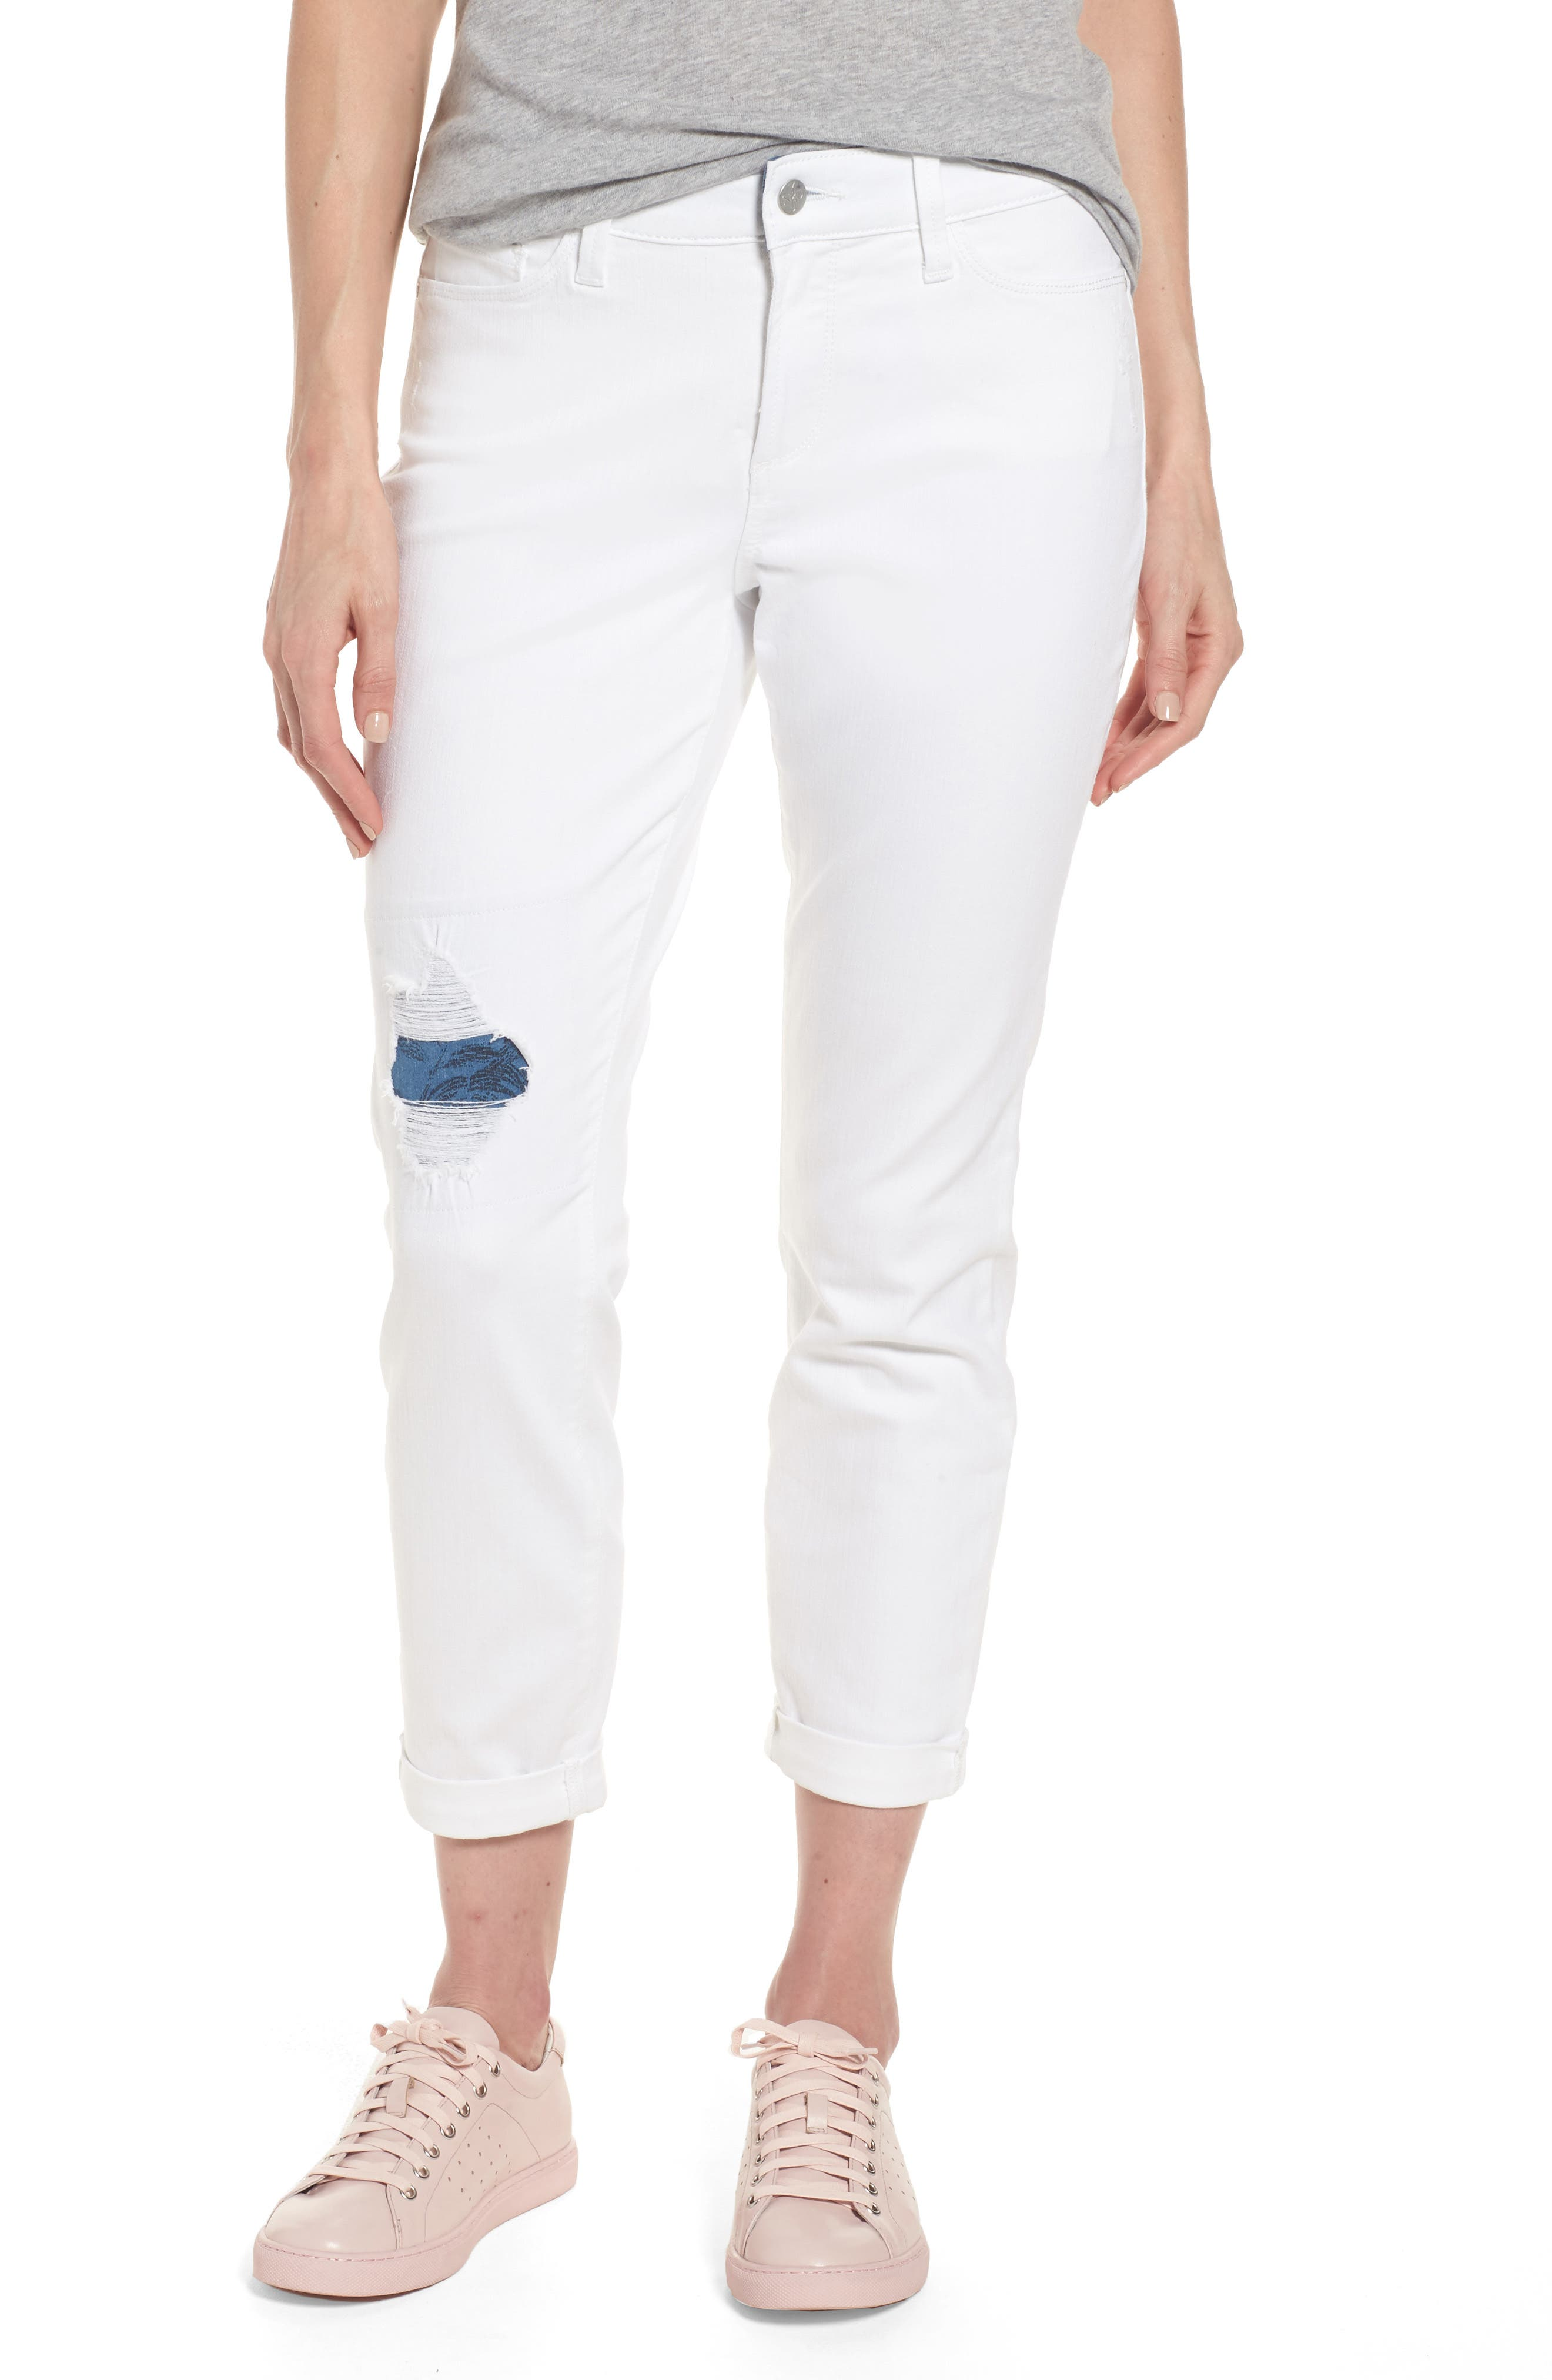 Alternate Image 1 Selected - NYDJ Ripped Stretch Ankle Jeans